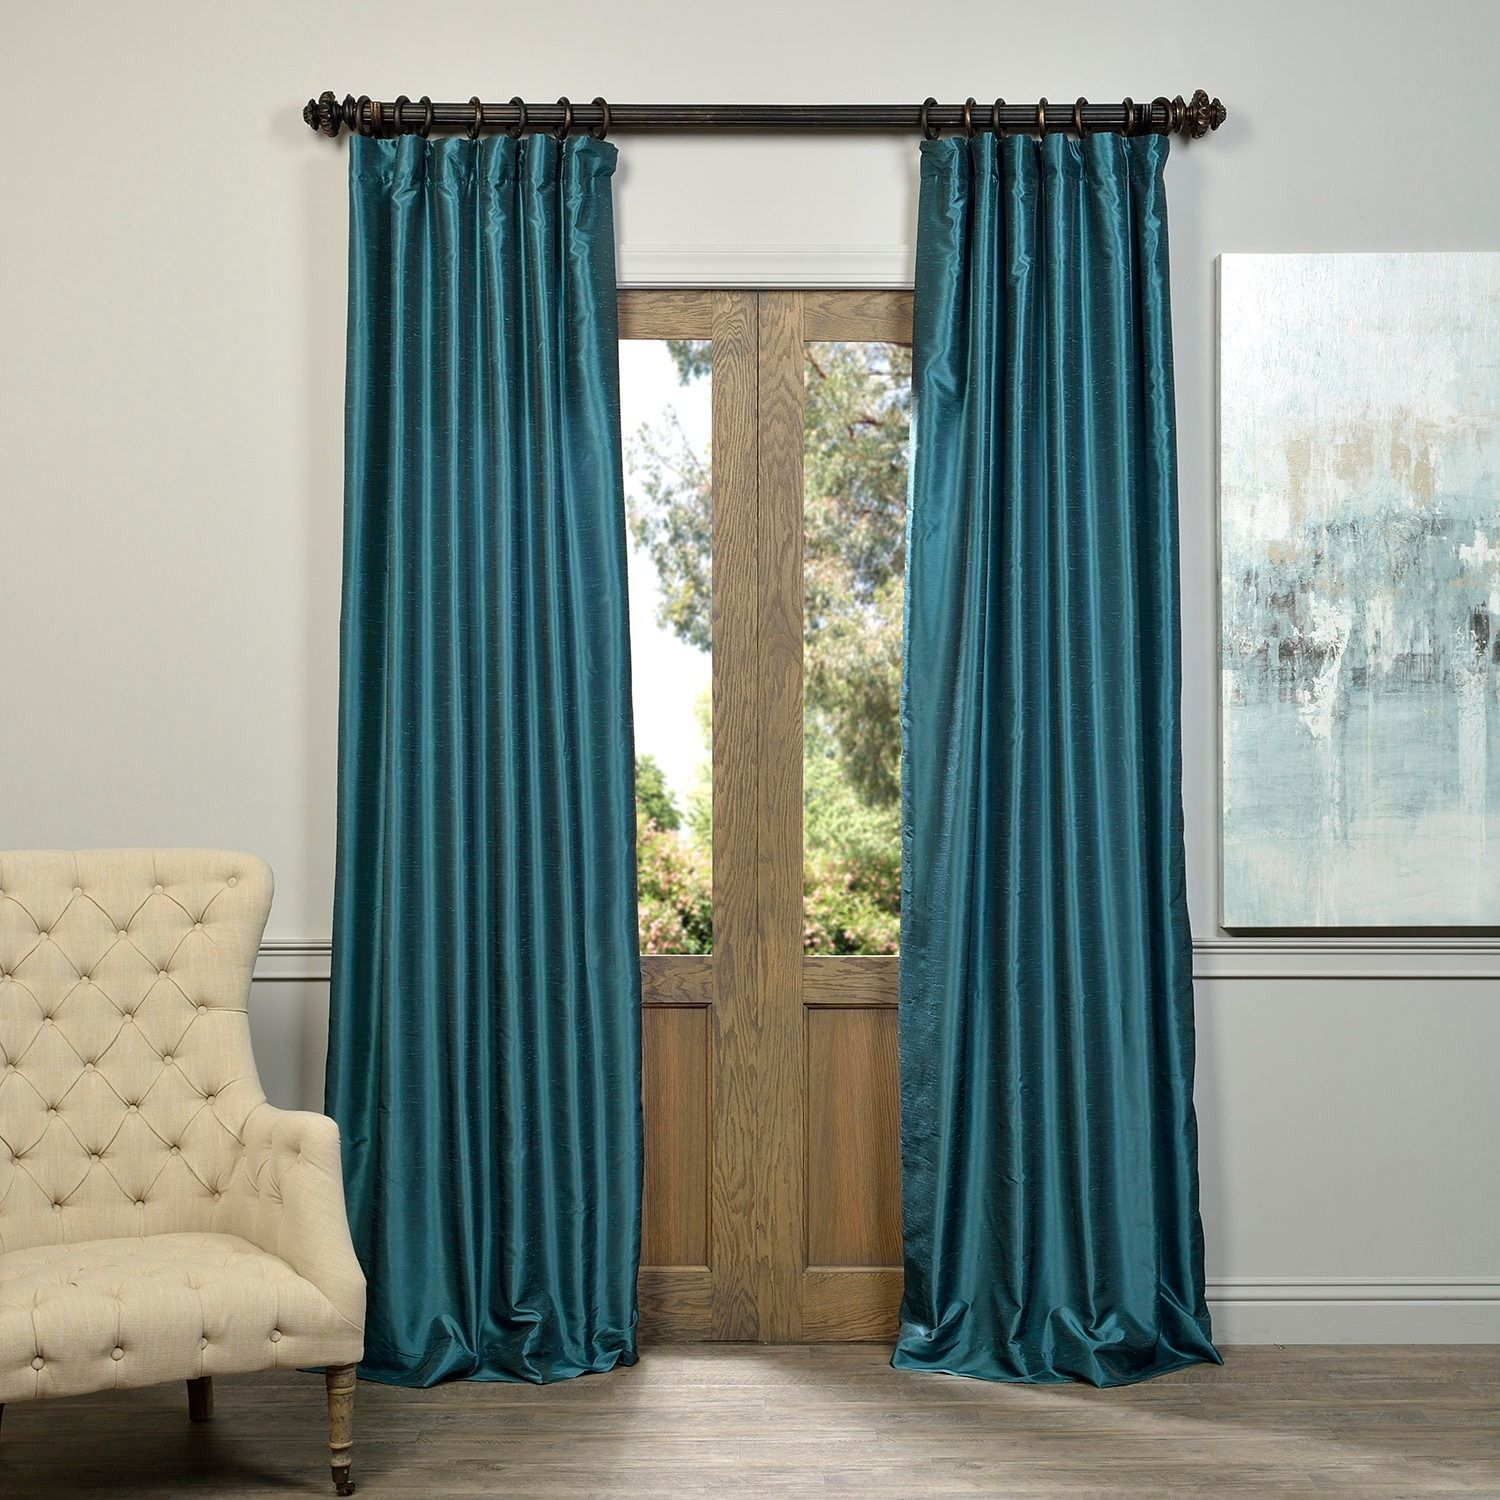 Faux Silk Curtains Dress Up Your Window In Extravagant Style With This Peacock Blue